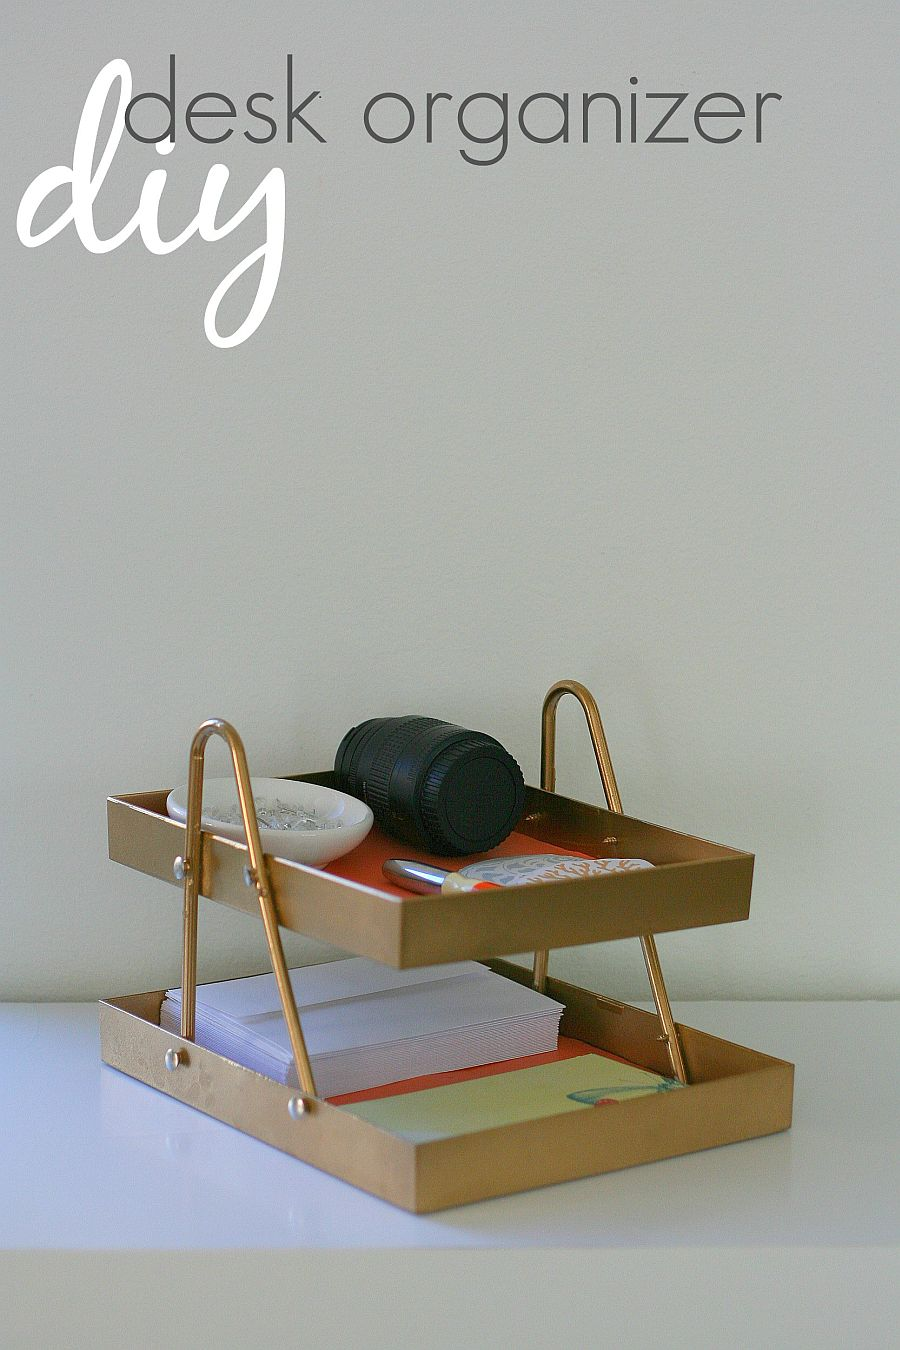 Make a simple and easy two tier DIY desk organizer